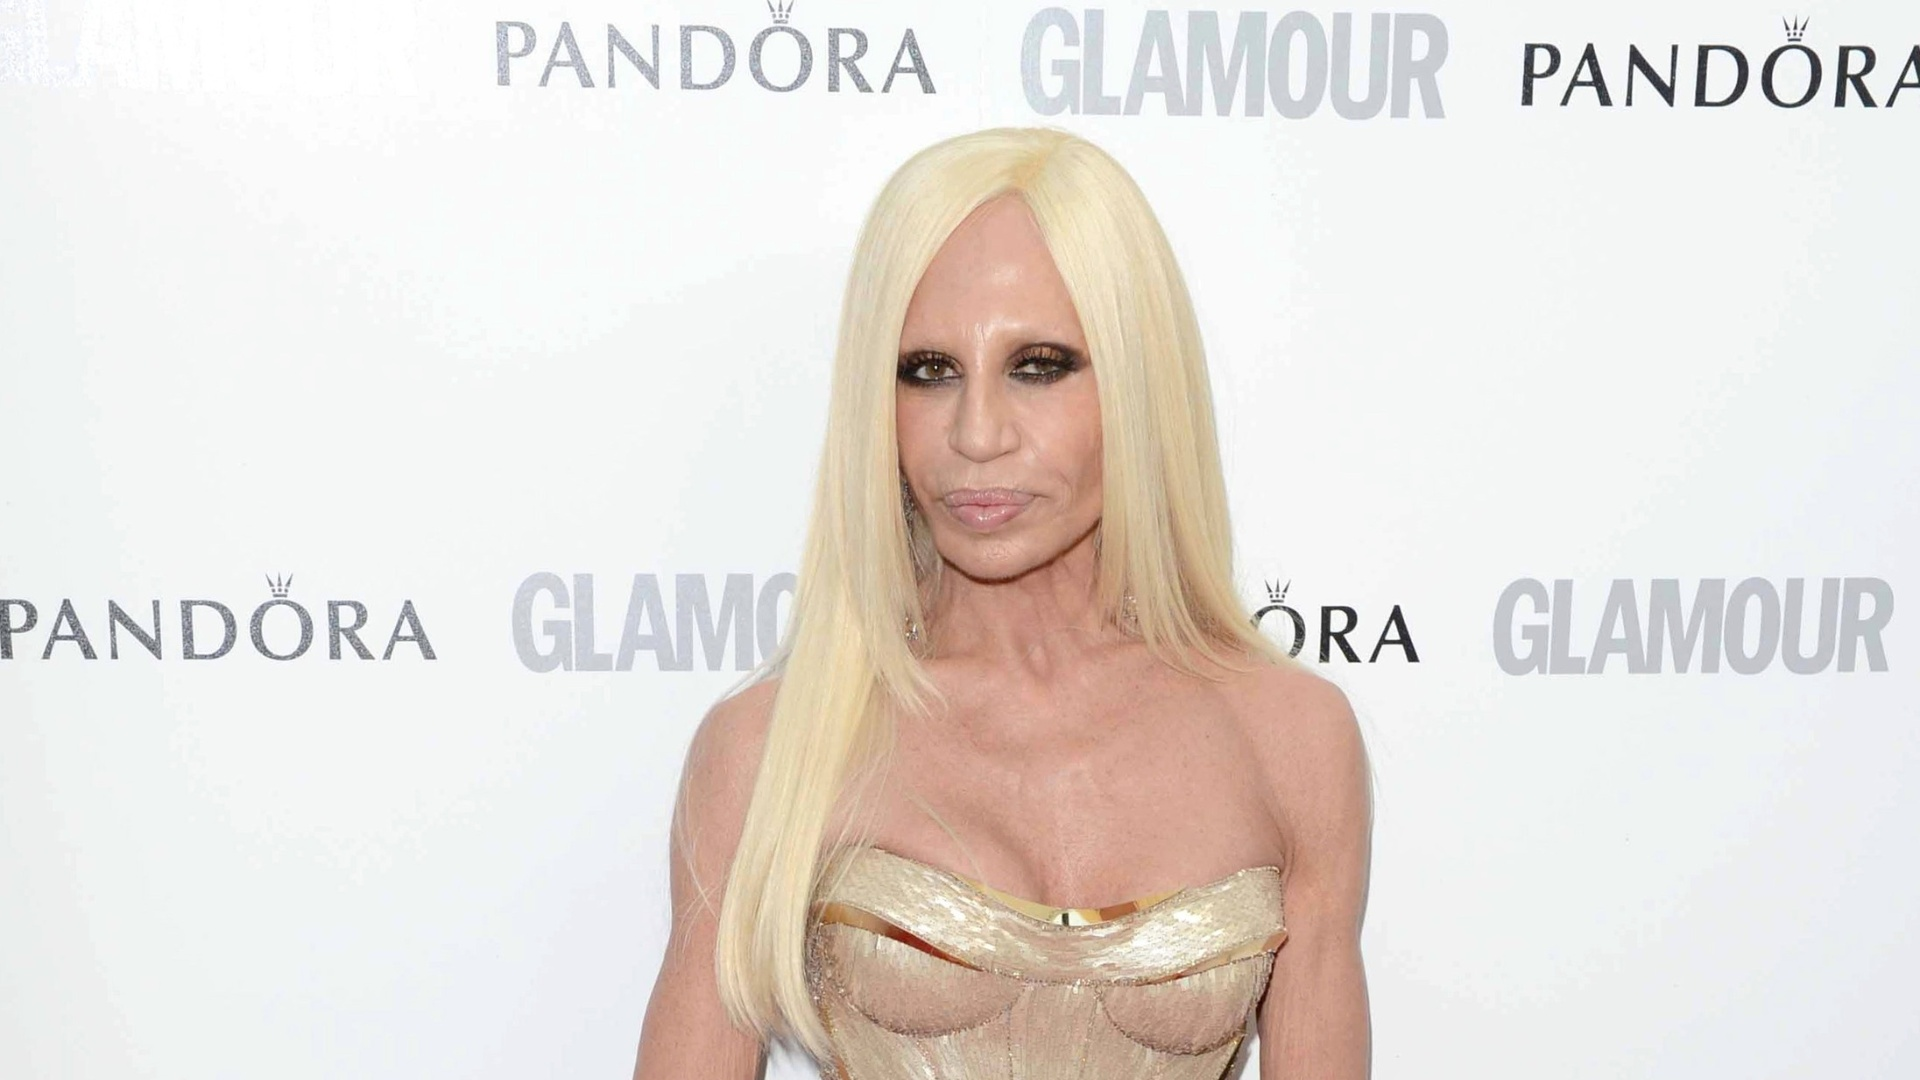 Donatella Versace prestigia o Glamour Women of The Year, premiação realizada pela revista